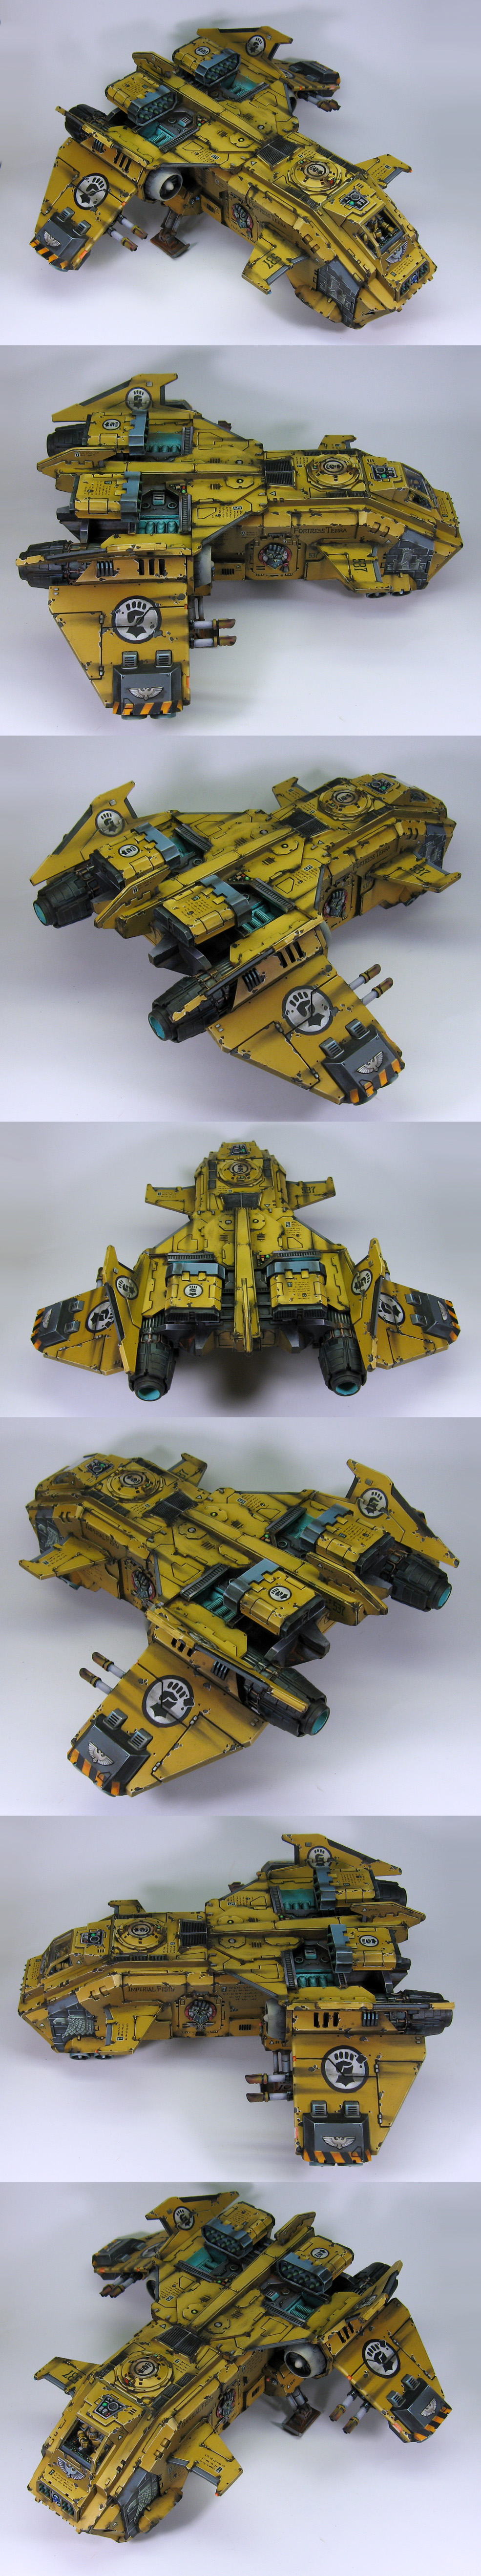 Imperial Fists Storm Eagle